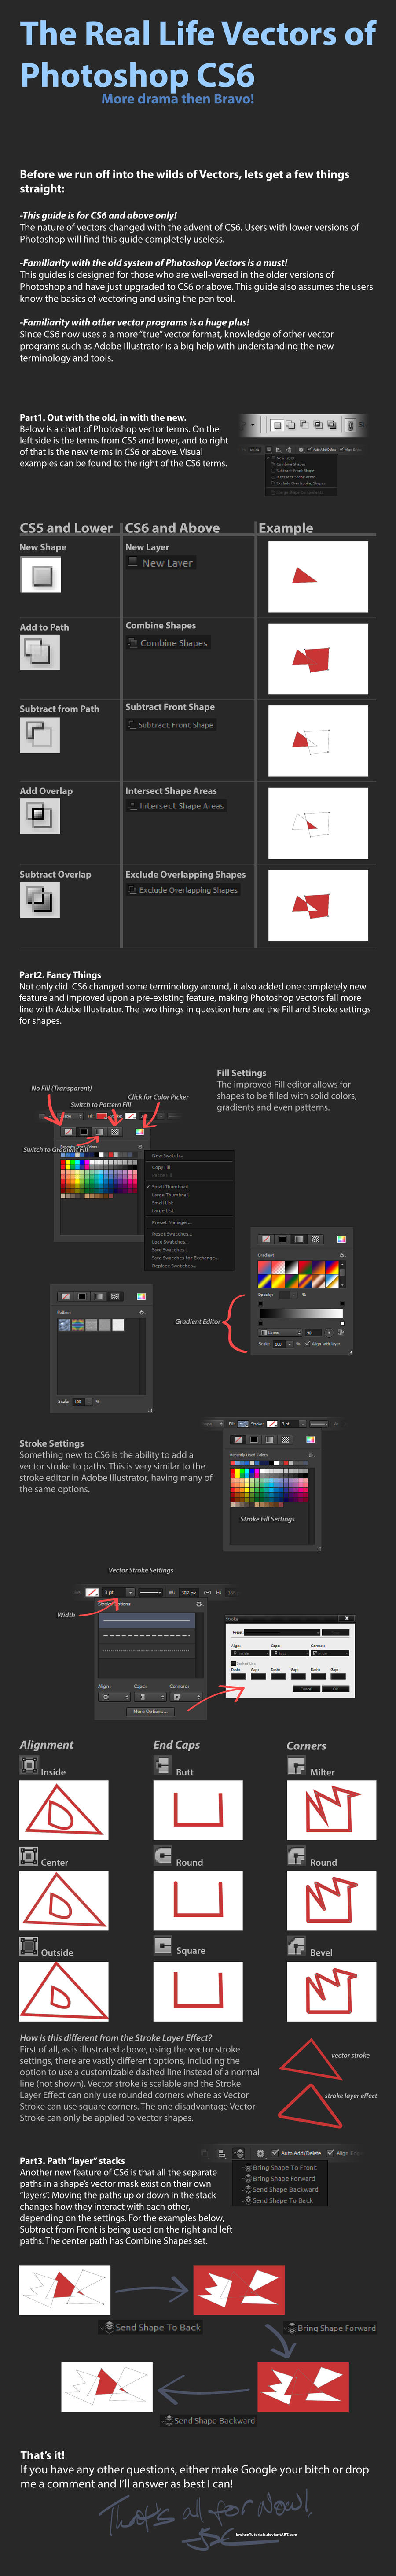 Photoshop CS6 Vector Guide by BrokenTutorials